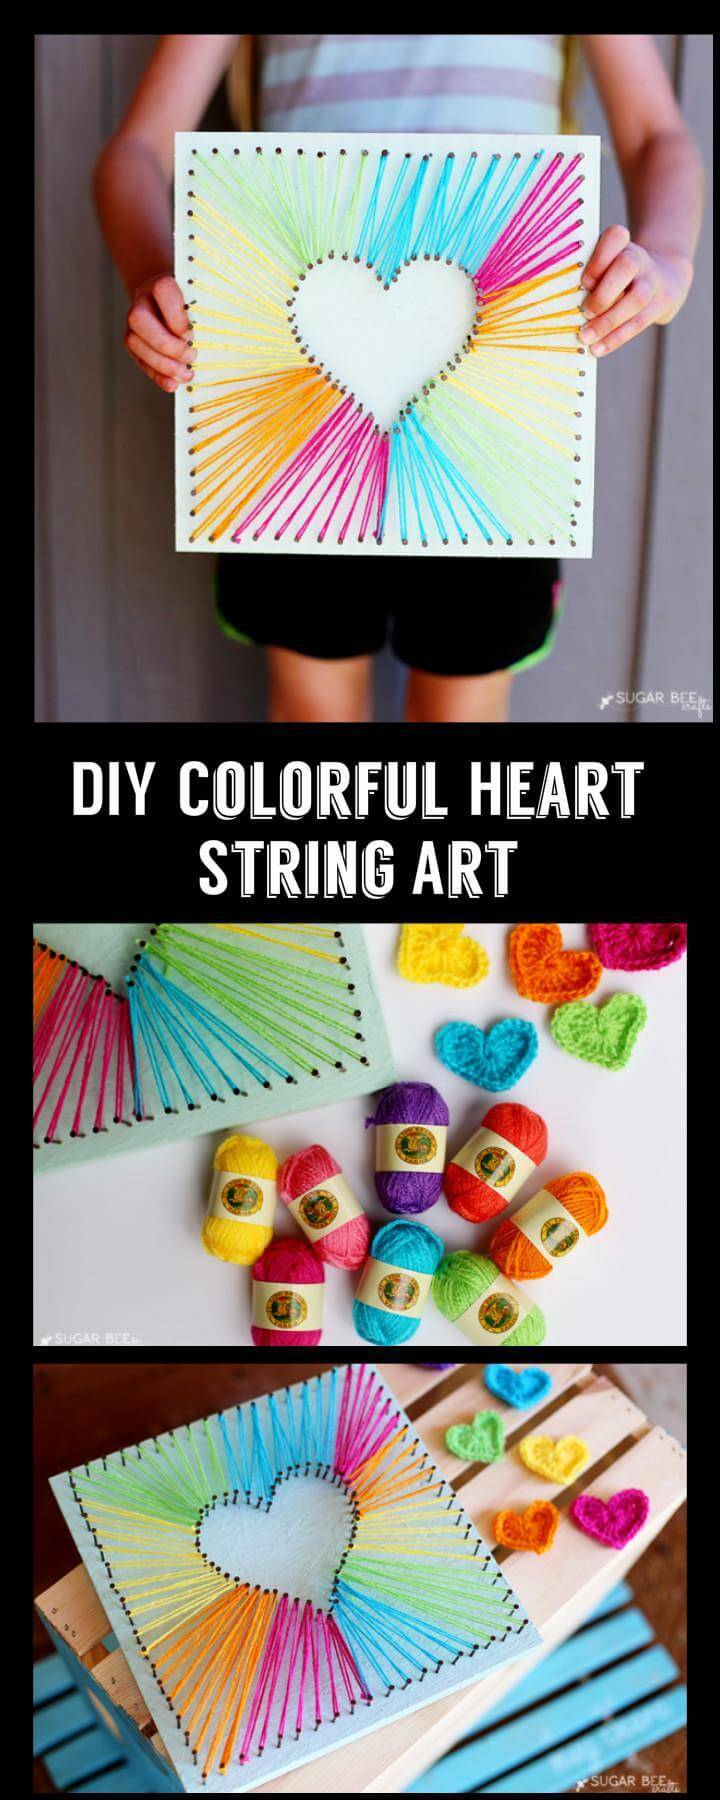 DIY Colorful Heart String Art